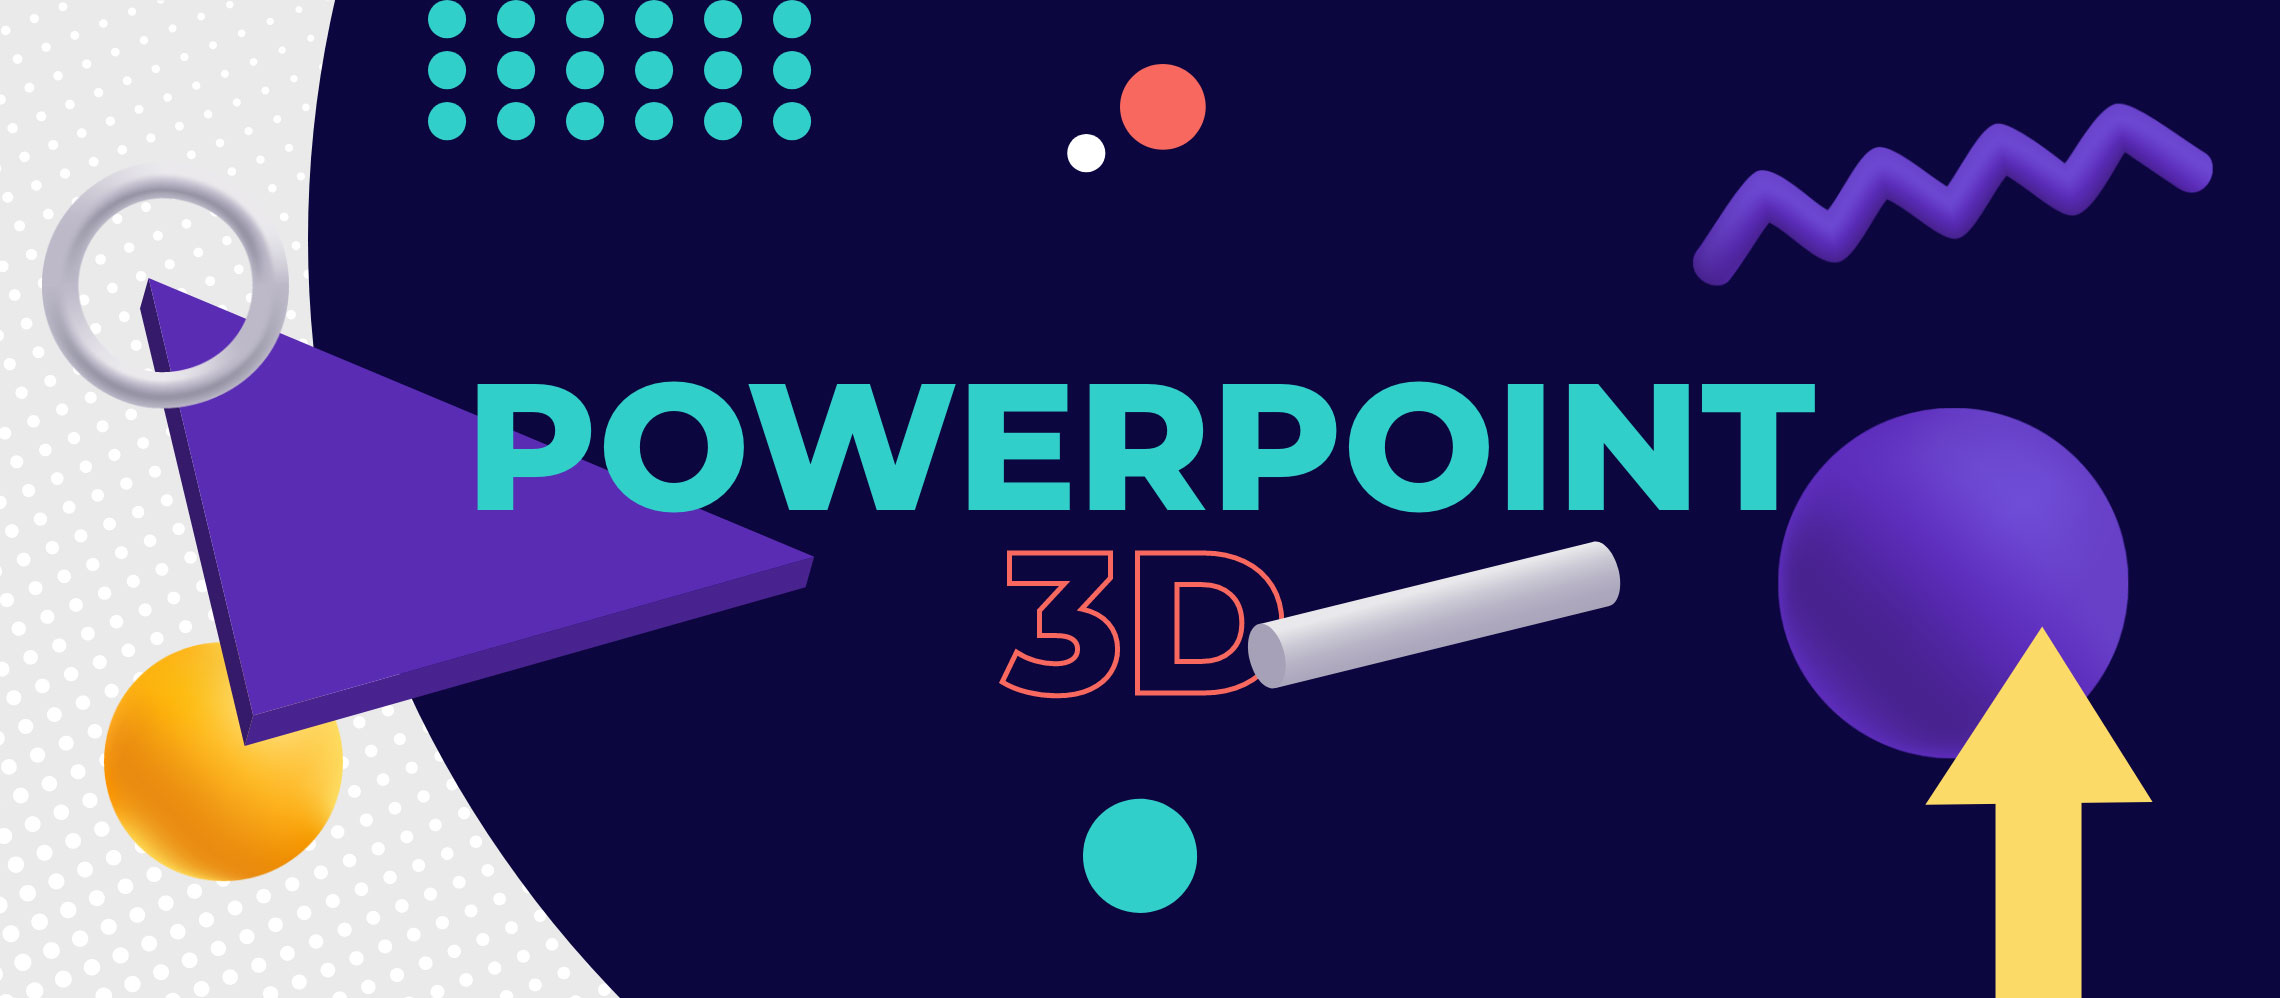 PowerPoint 3D: add another dimension to your presentation.